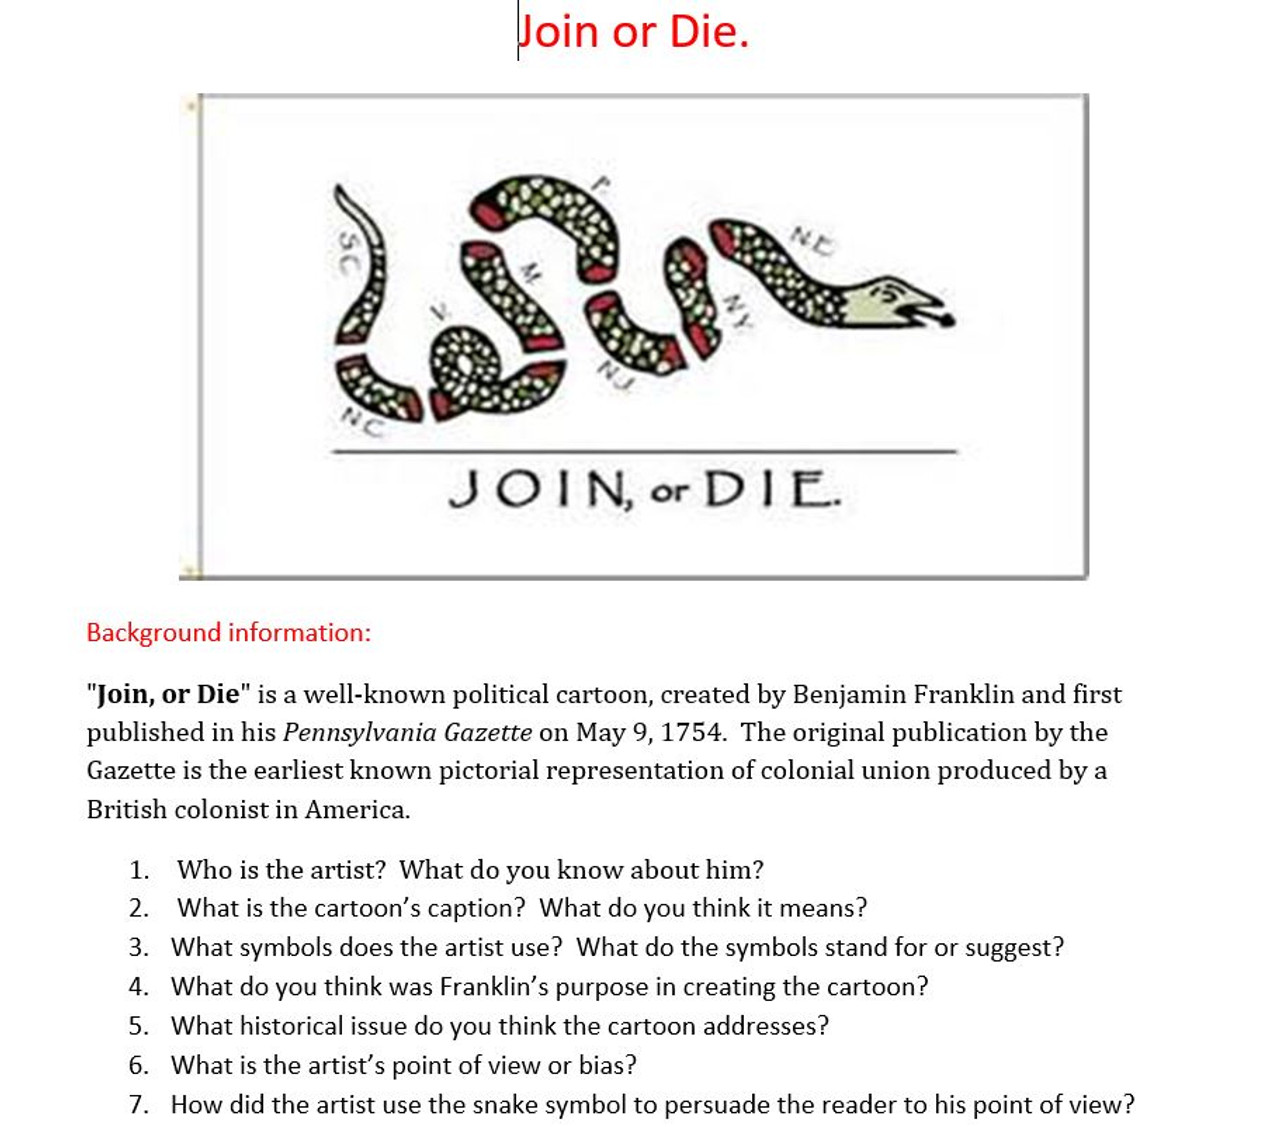 French And Indian War American Revolution Join Or Die Cartoon